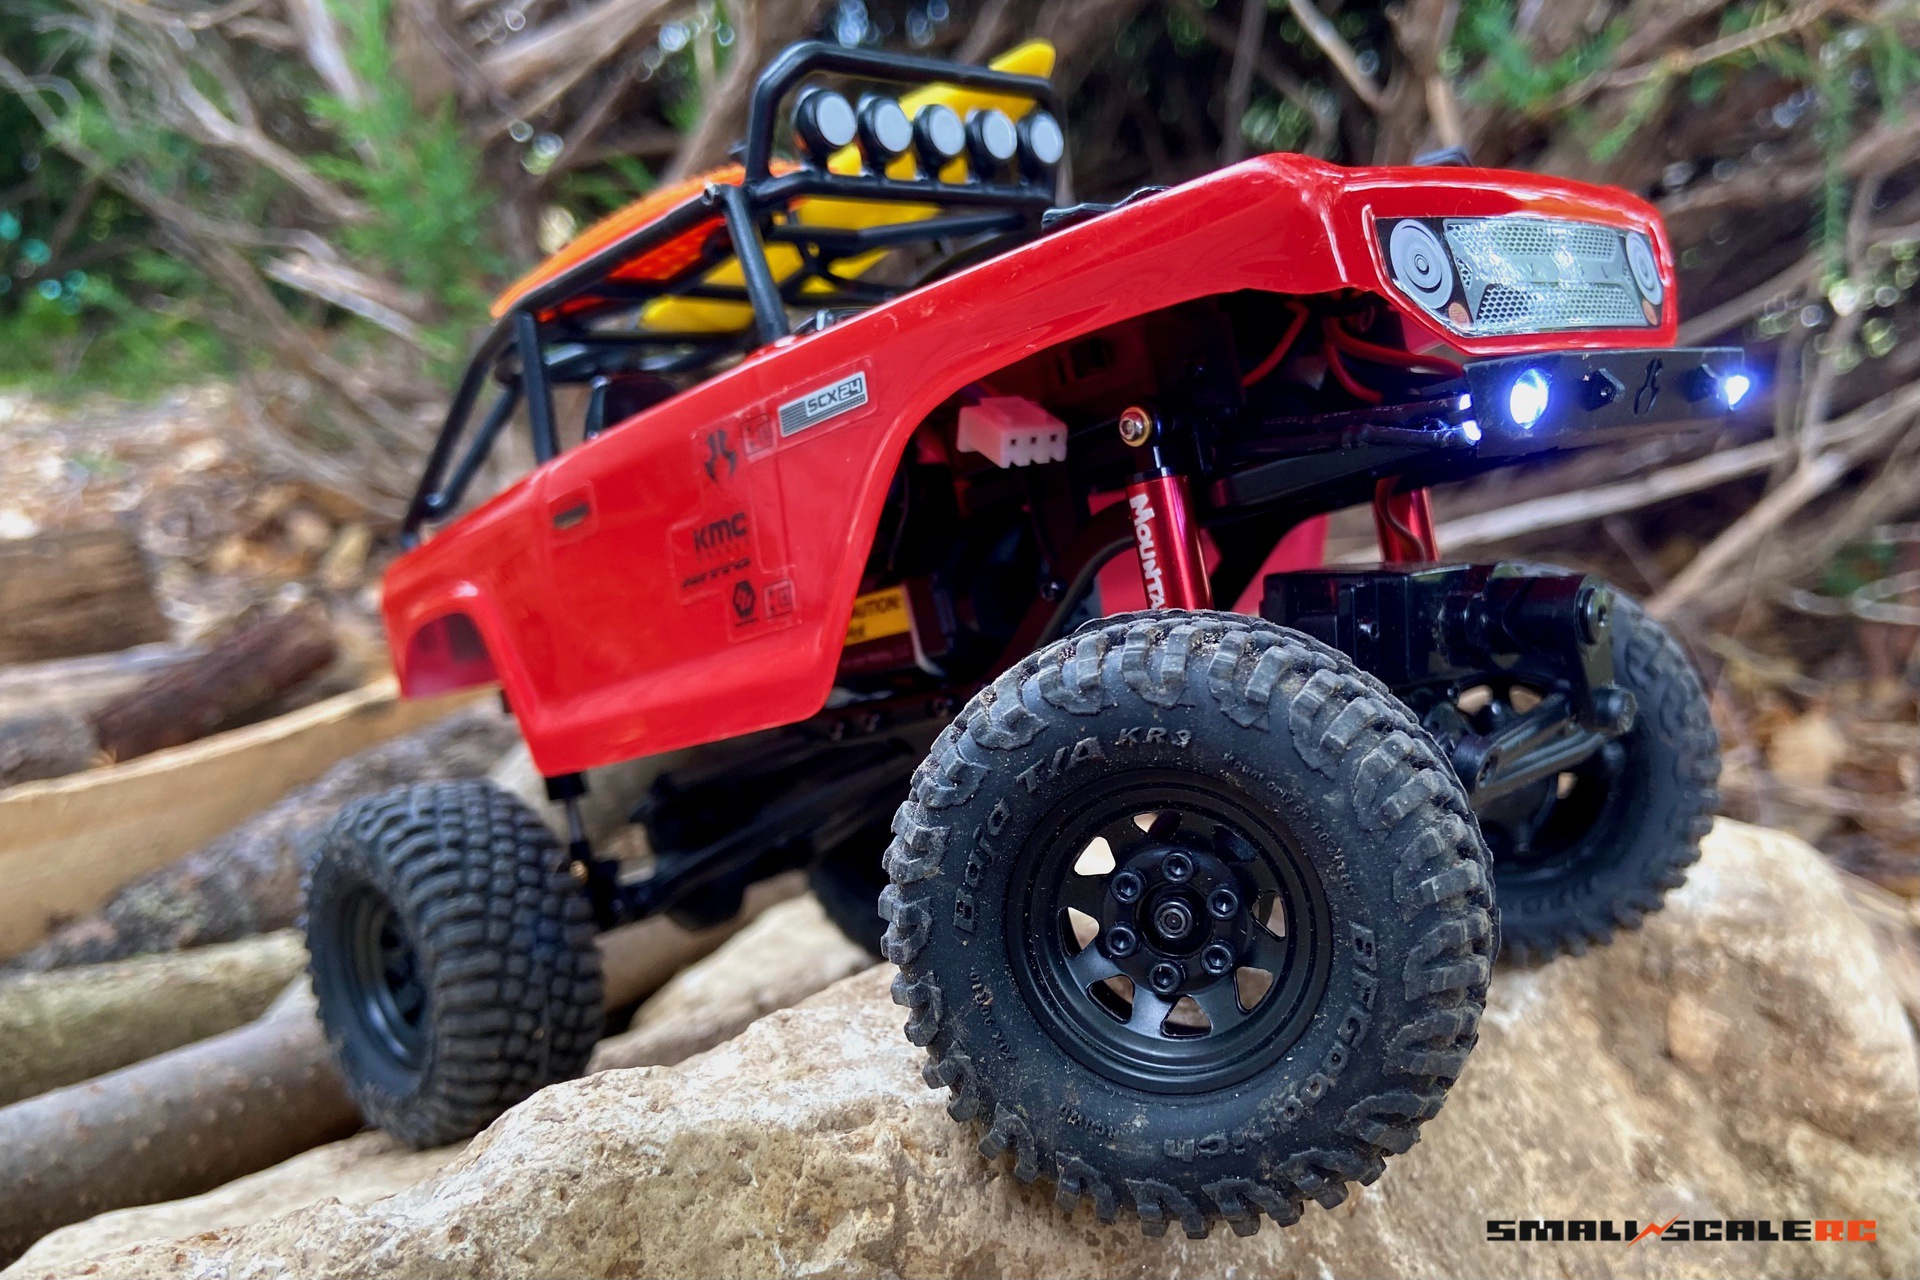 Review: Injora 40mm Internal-Spring Shocks for the Axial SCX24